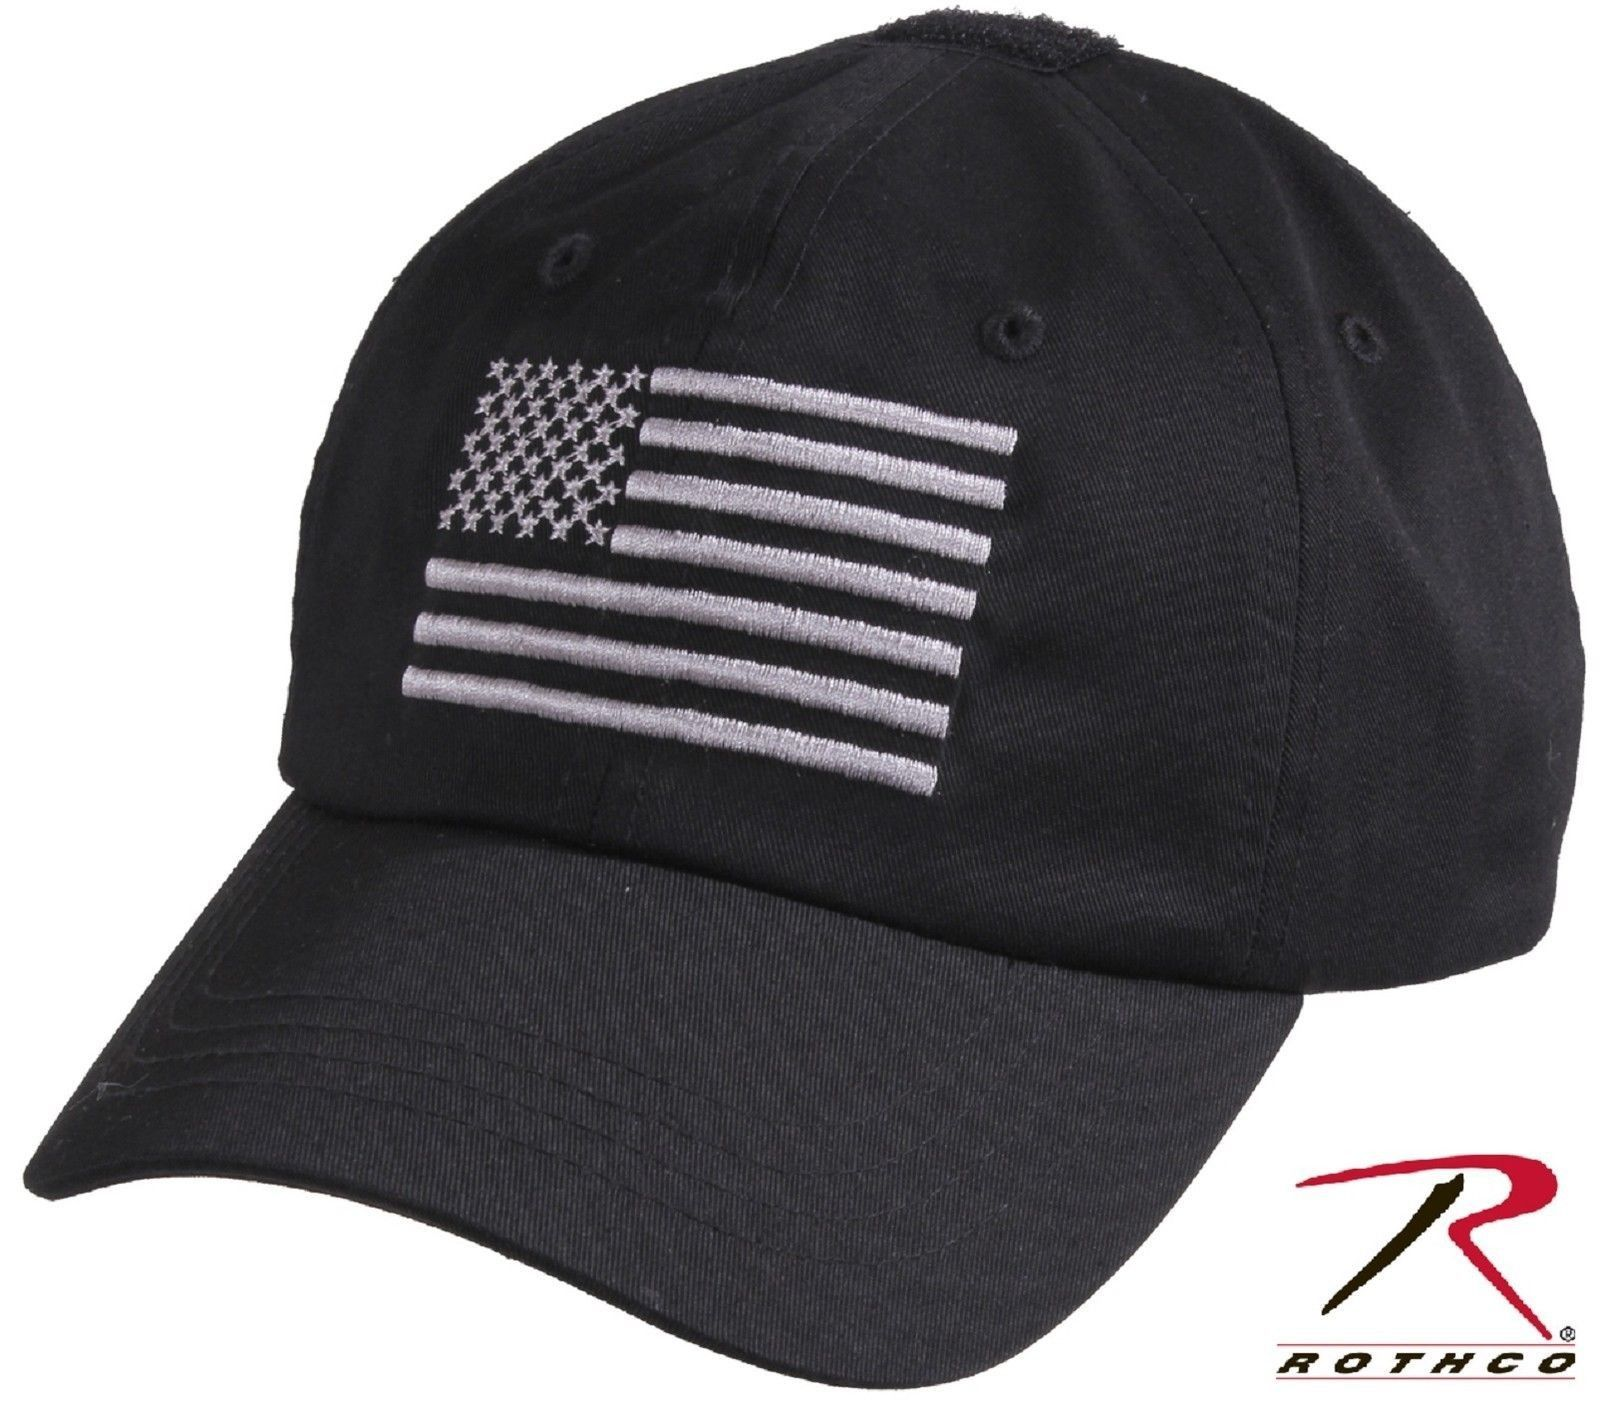 2b13d9ec9d0 Black   Silver USA Flag Tactical Operator Cap - Embroidered American Flag  Hat